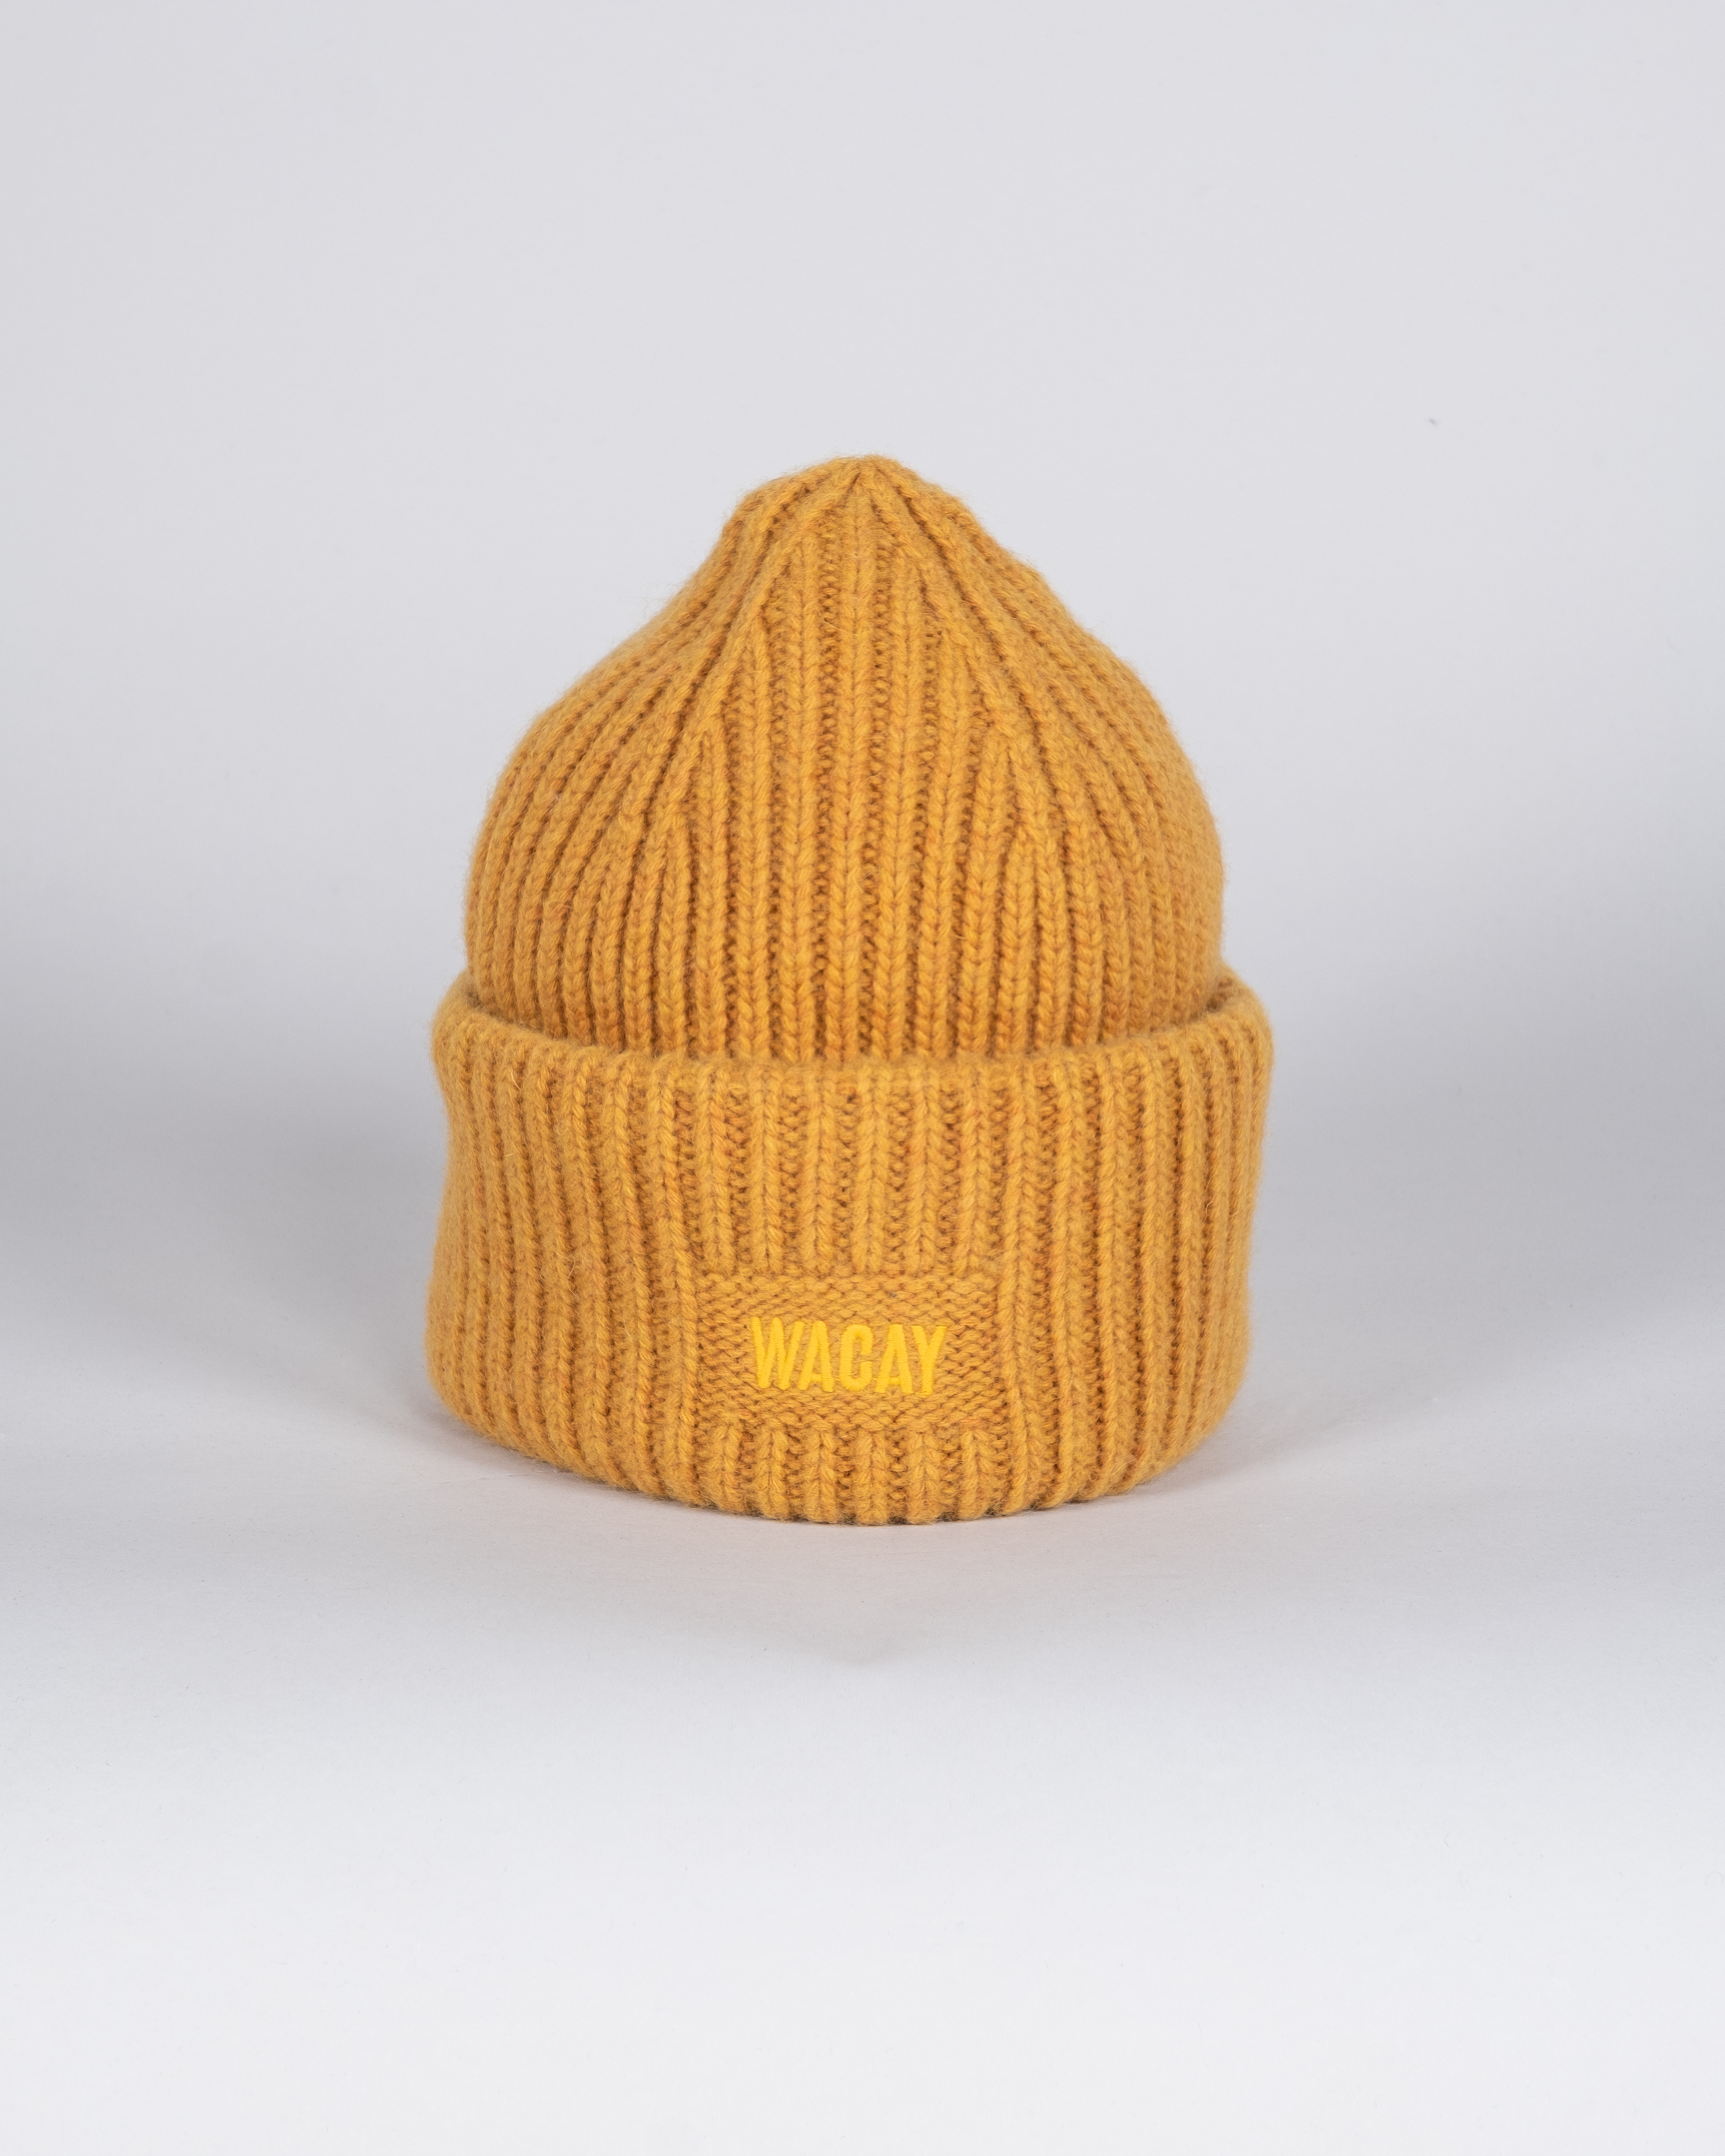 647b2462ce2 Wool Beanie Hat - Dirty Yellow - 654.se